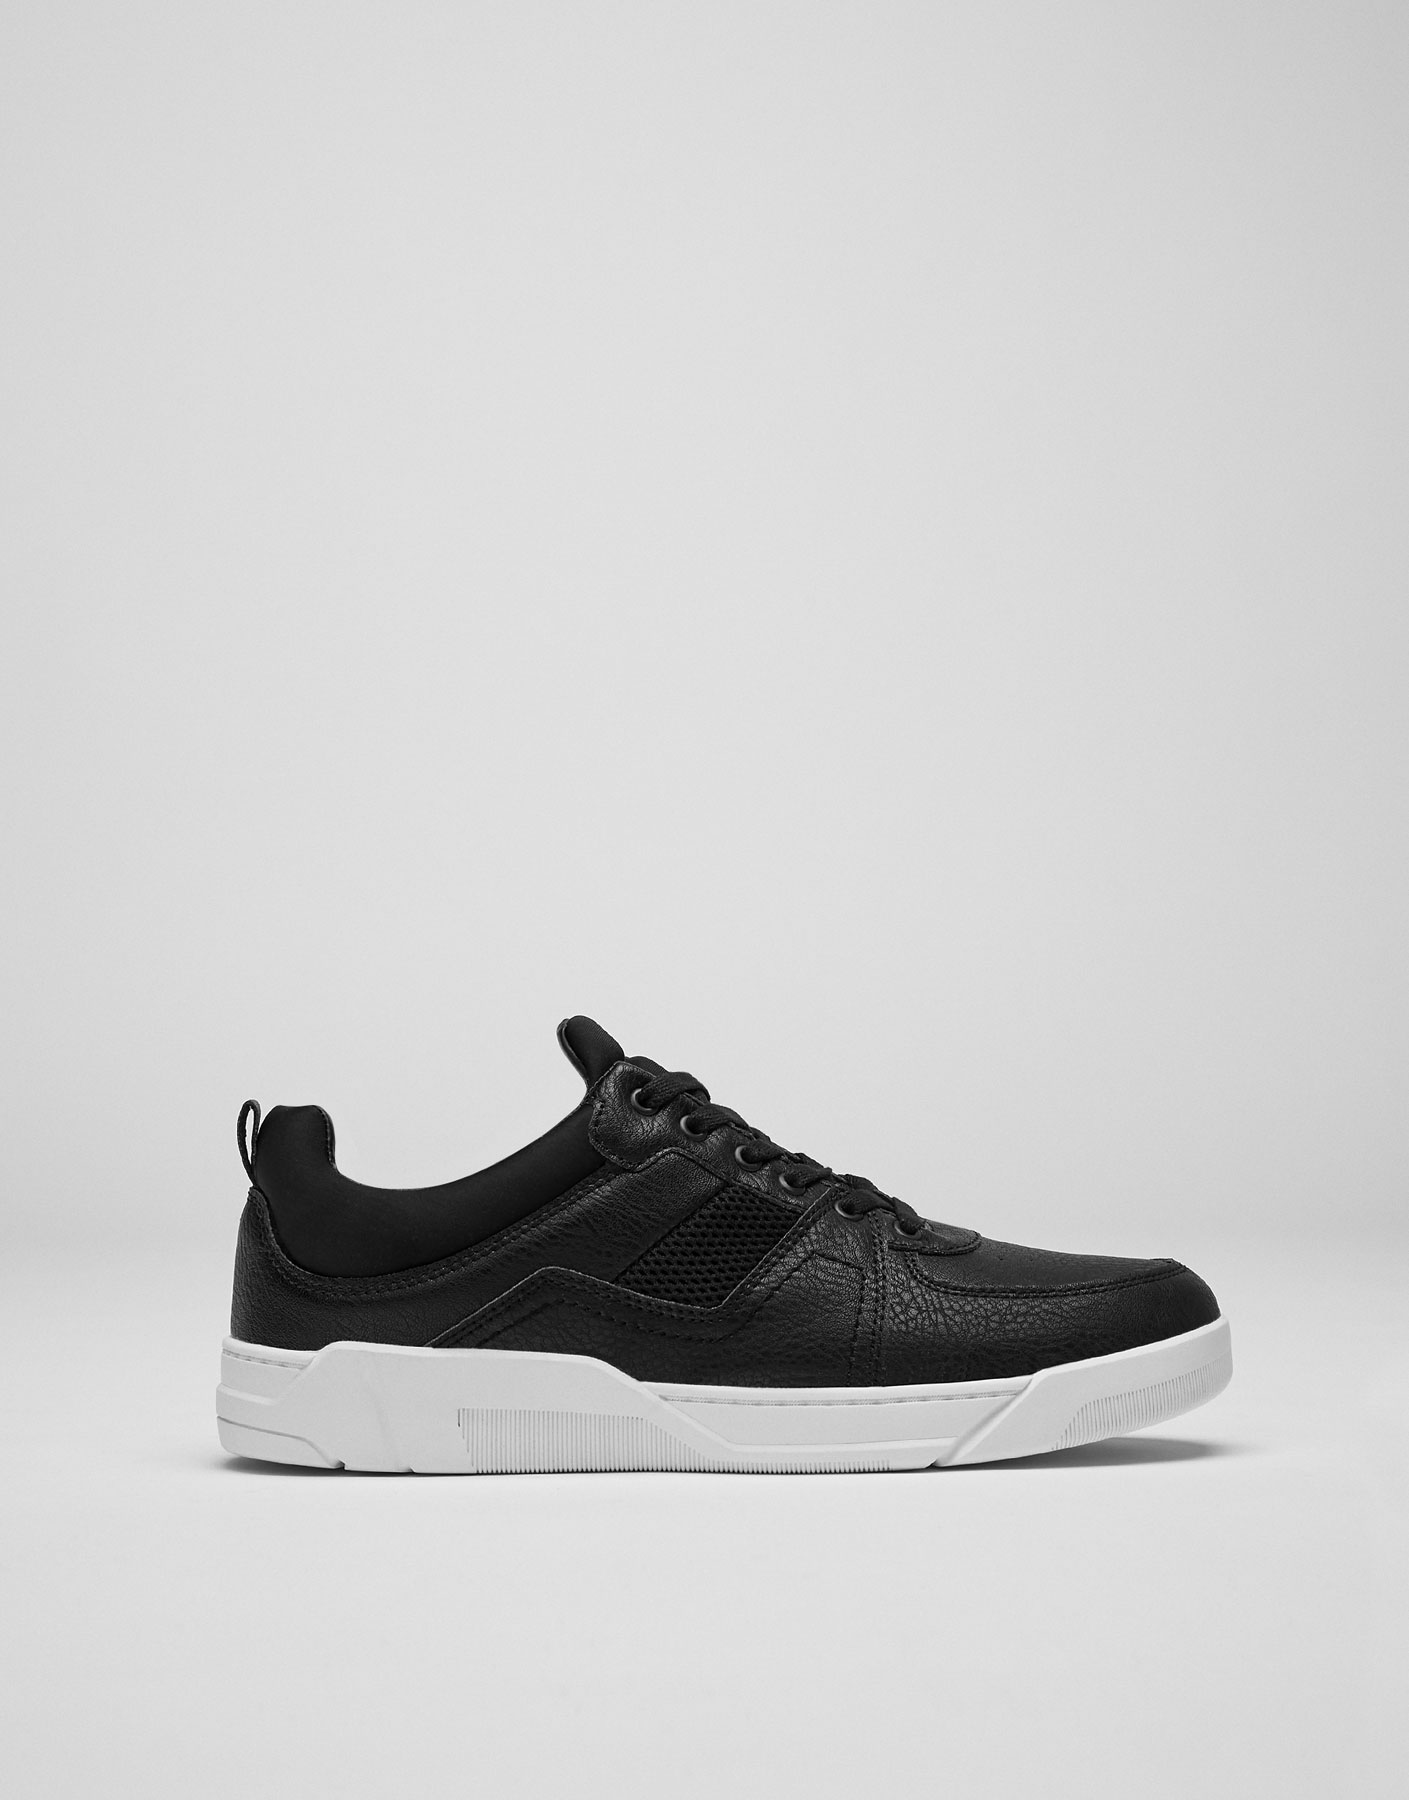 Black fashion plimsolls